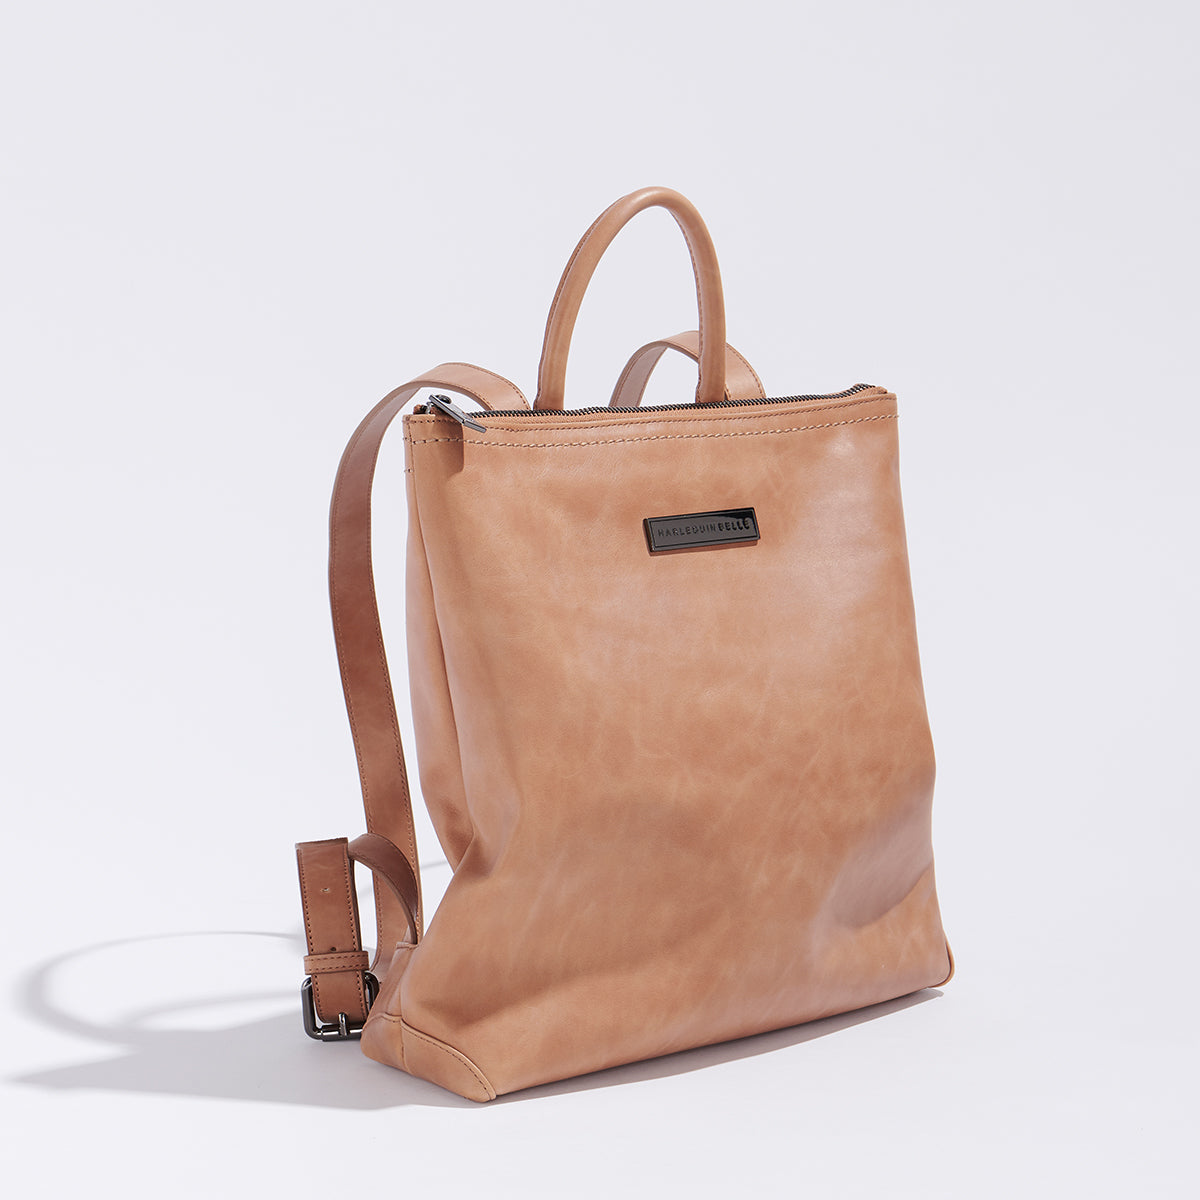 The Collective Backpack - Toffee - Ex PR Sample